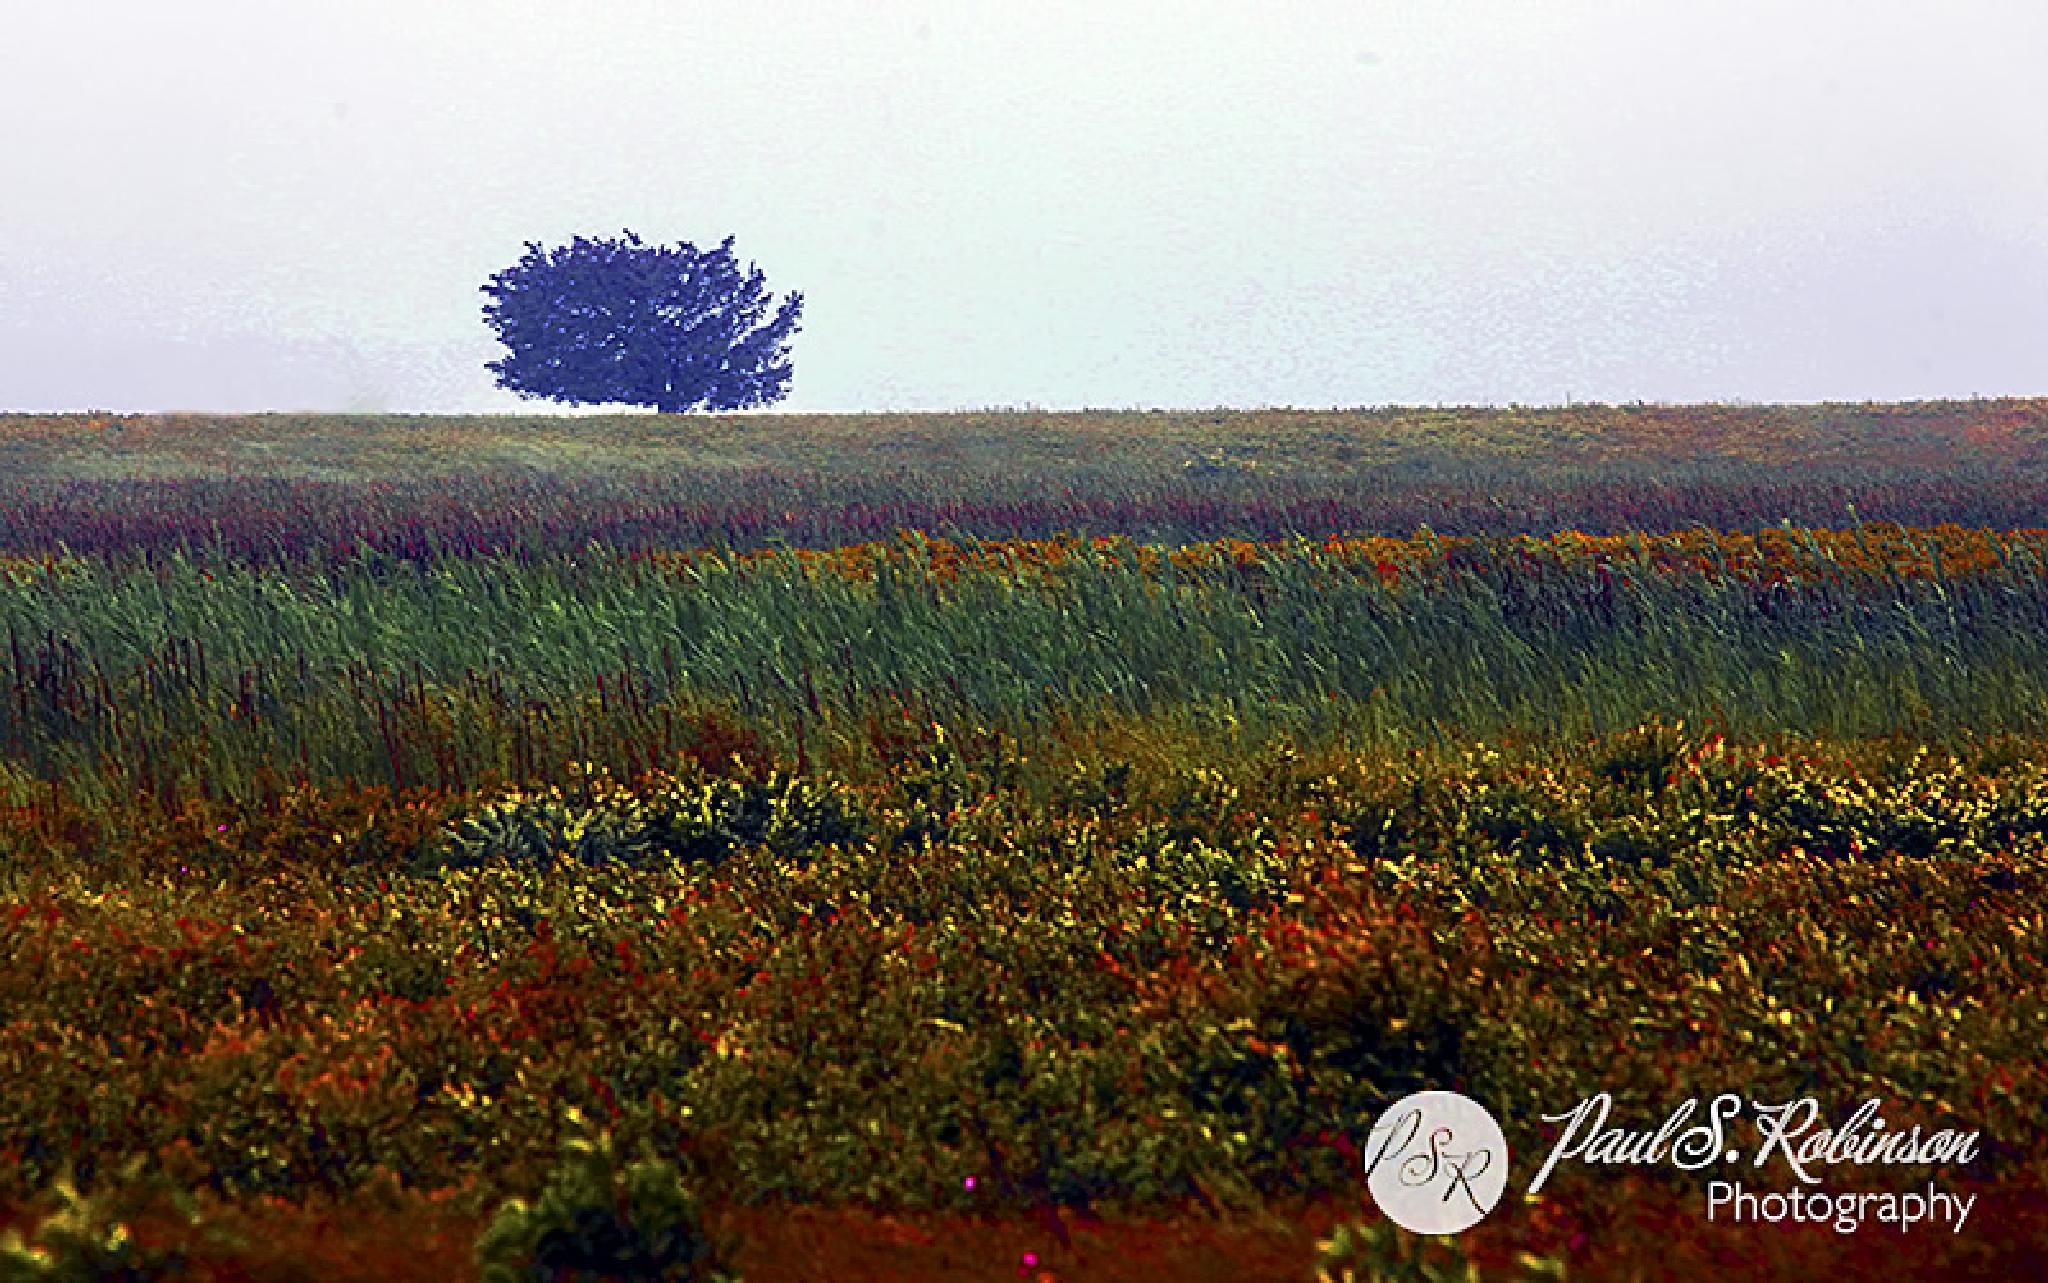 Tree On A Cloudy Day by psrstudio